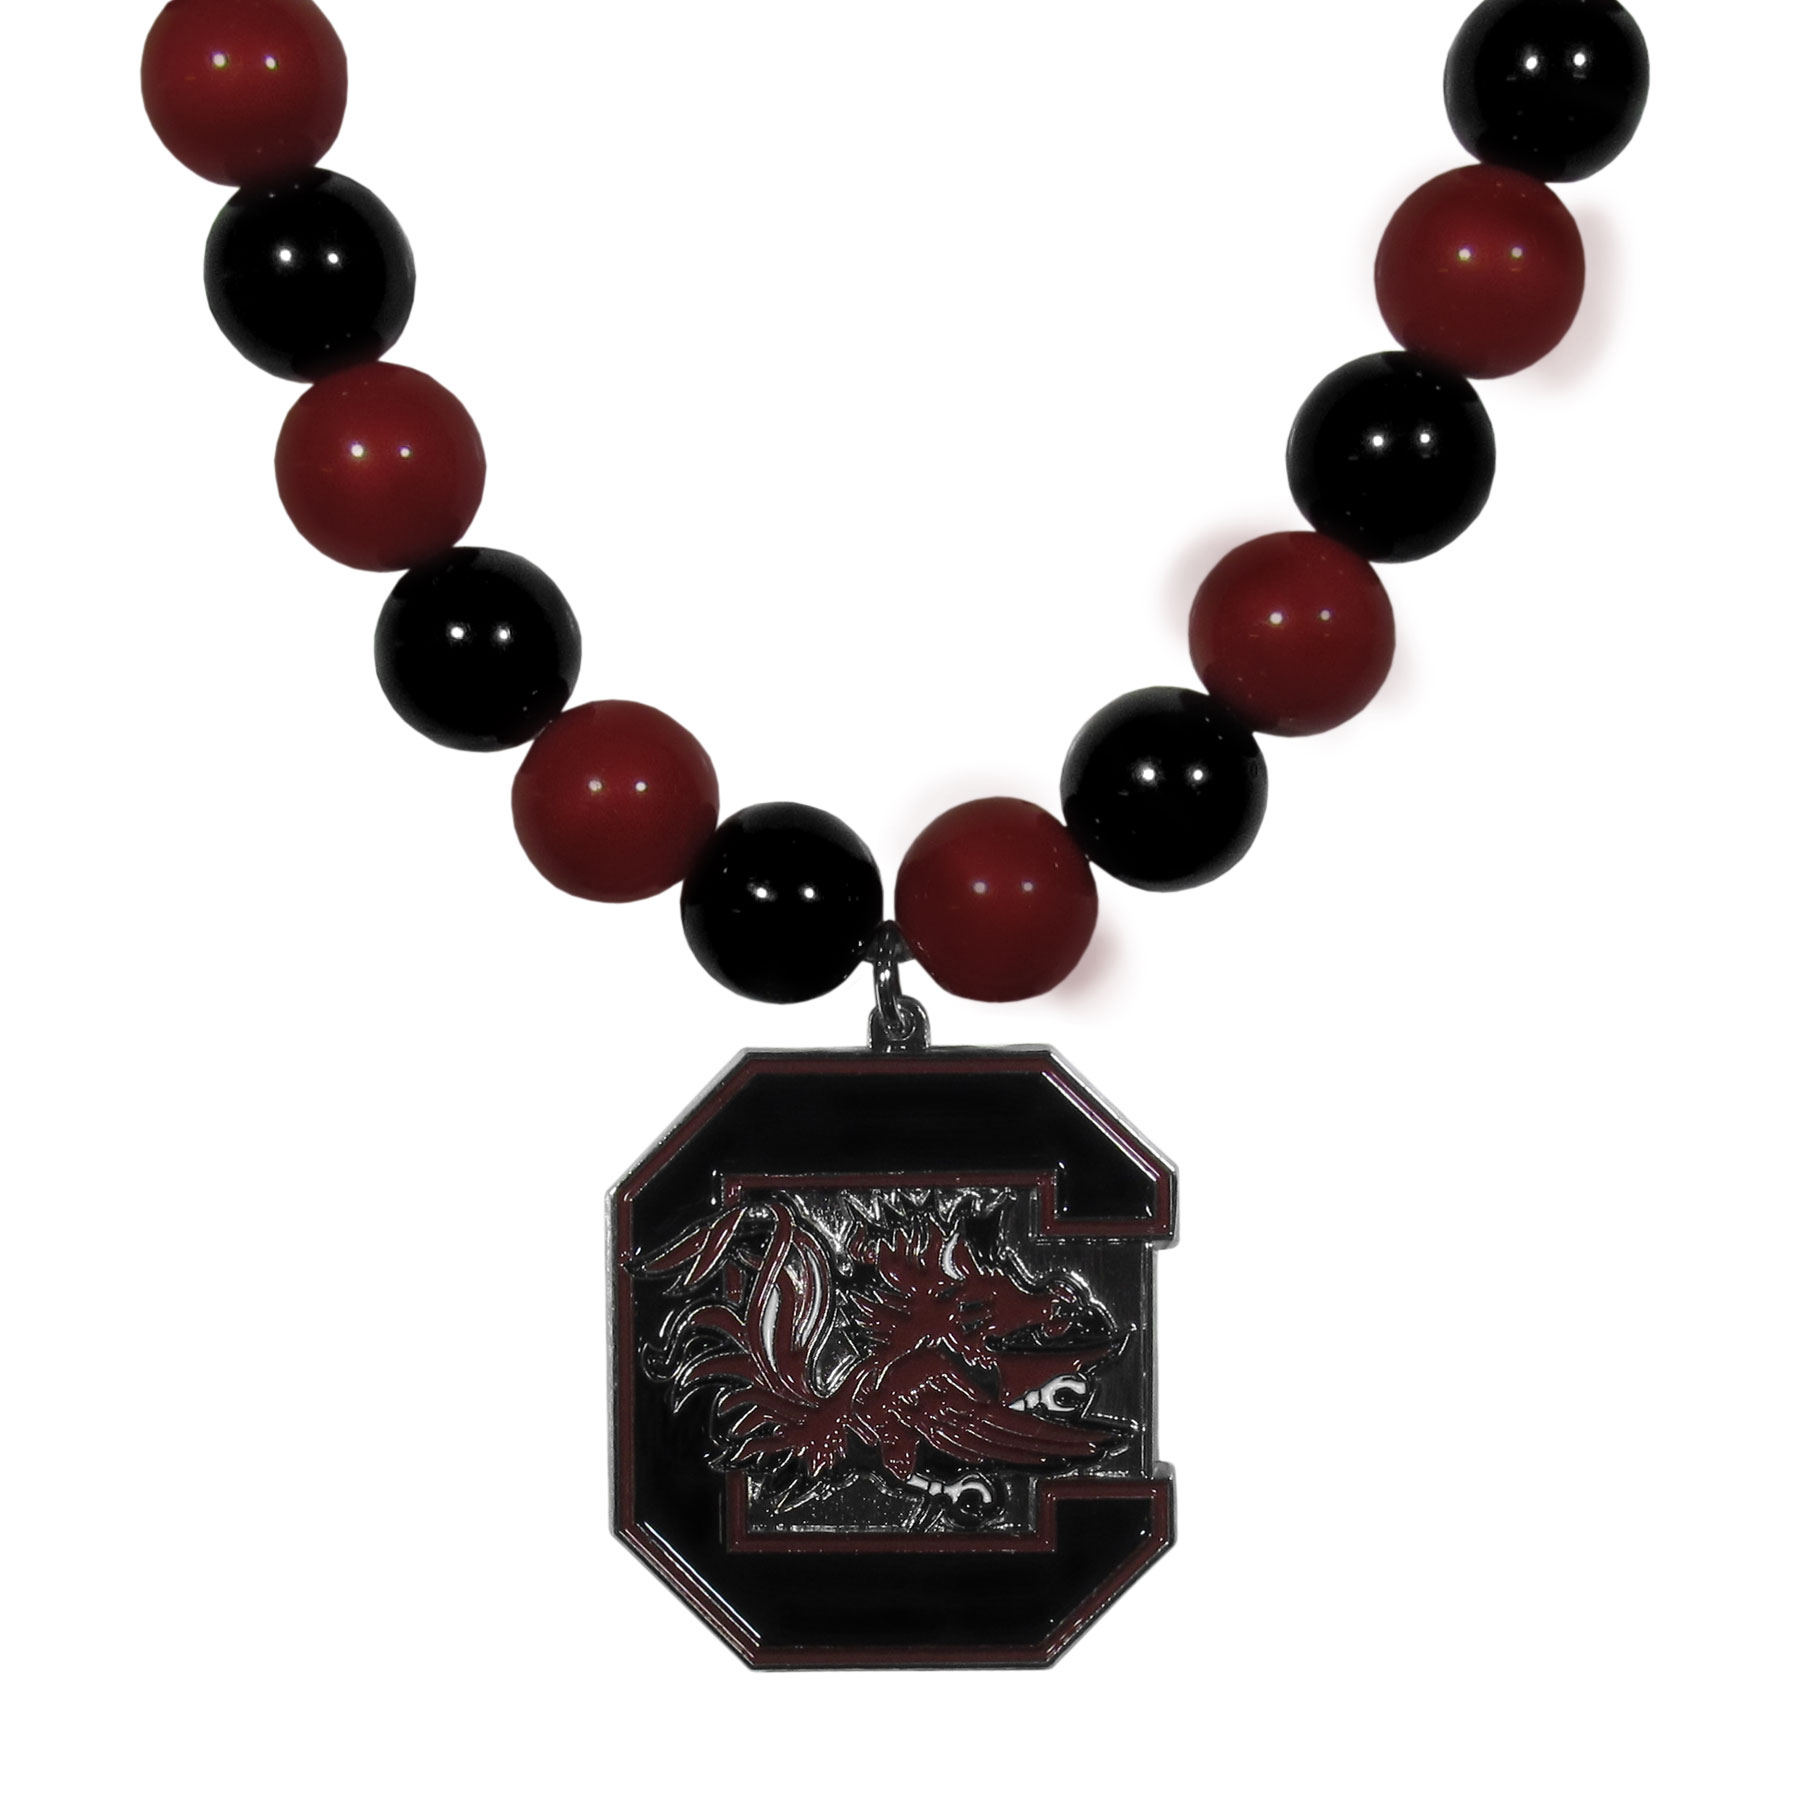 S. Carolina Gamecocks Fan Bead Necklace - Make a big statement with our fan bead necklaces! These brightly colored necklace have a 24 inch string of alternating colored beads with an extra large, high-polish S. Carolina Gamecocks pendant.